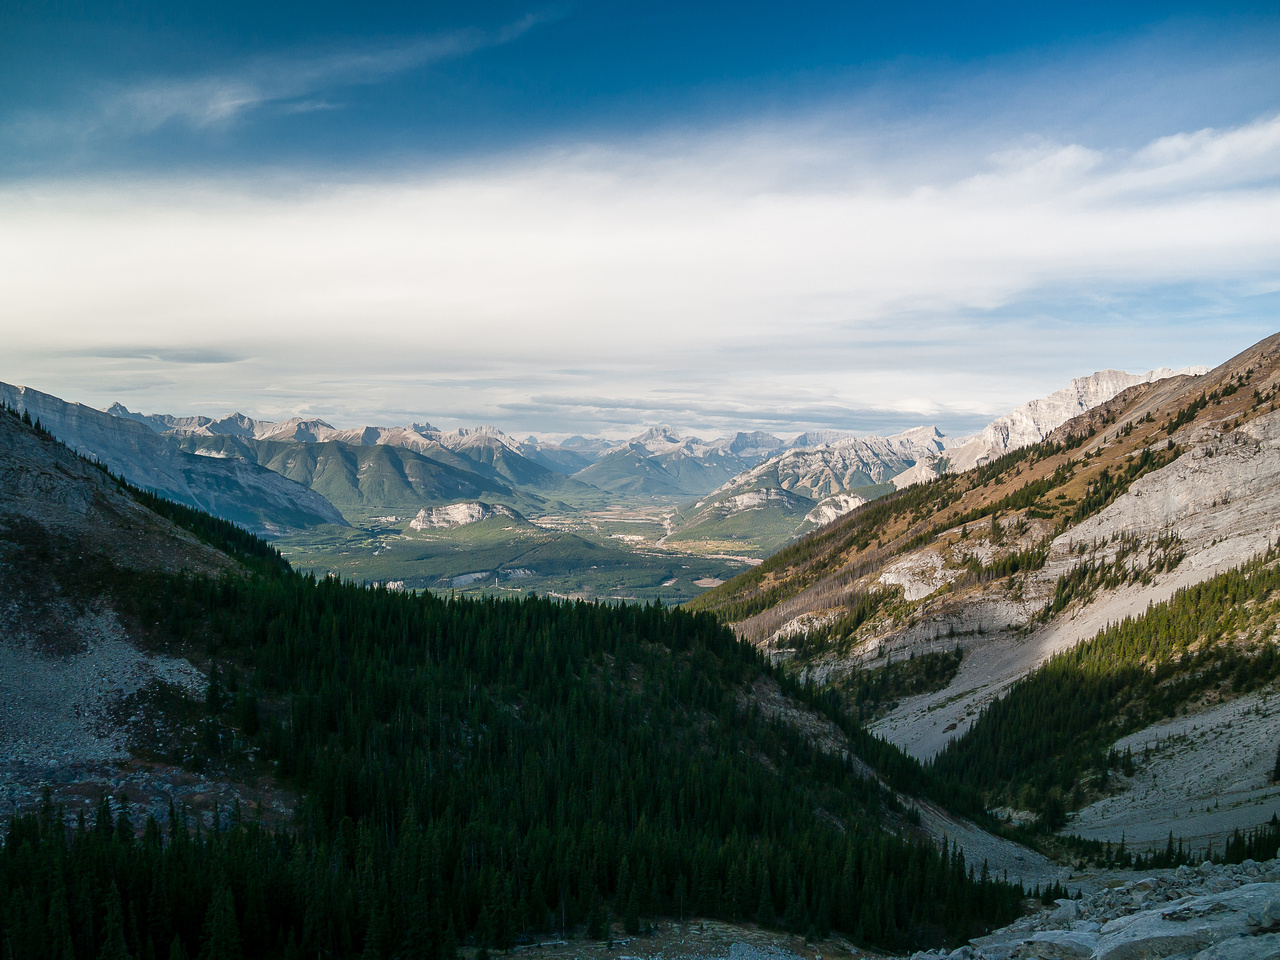 Another view back towards Banff.